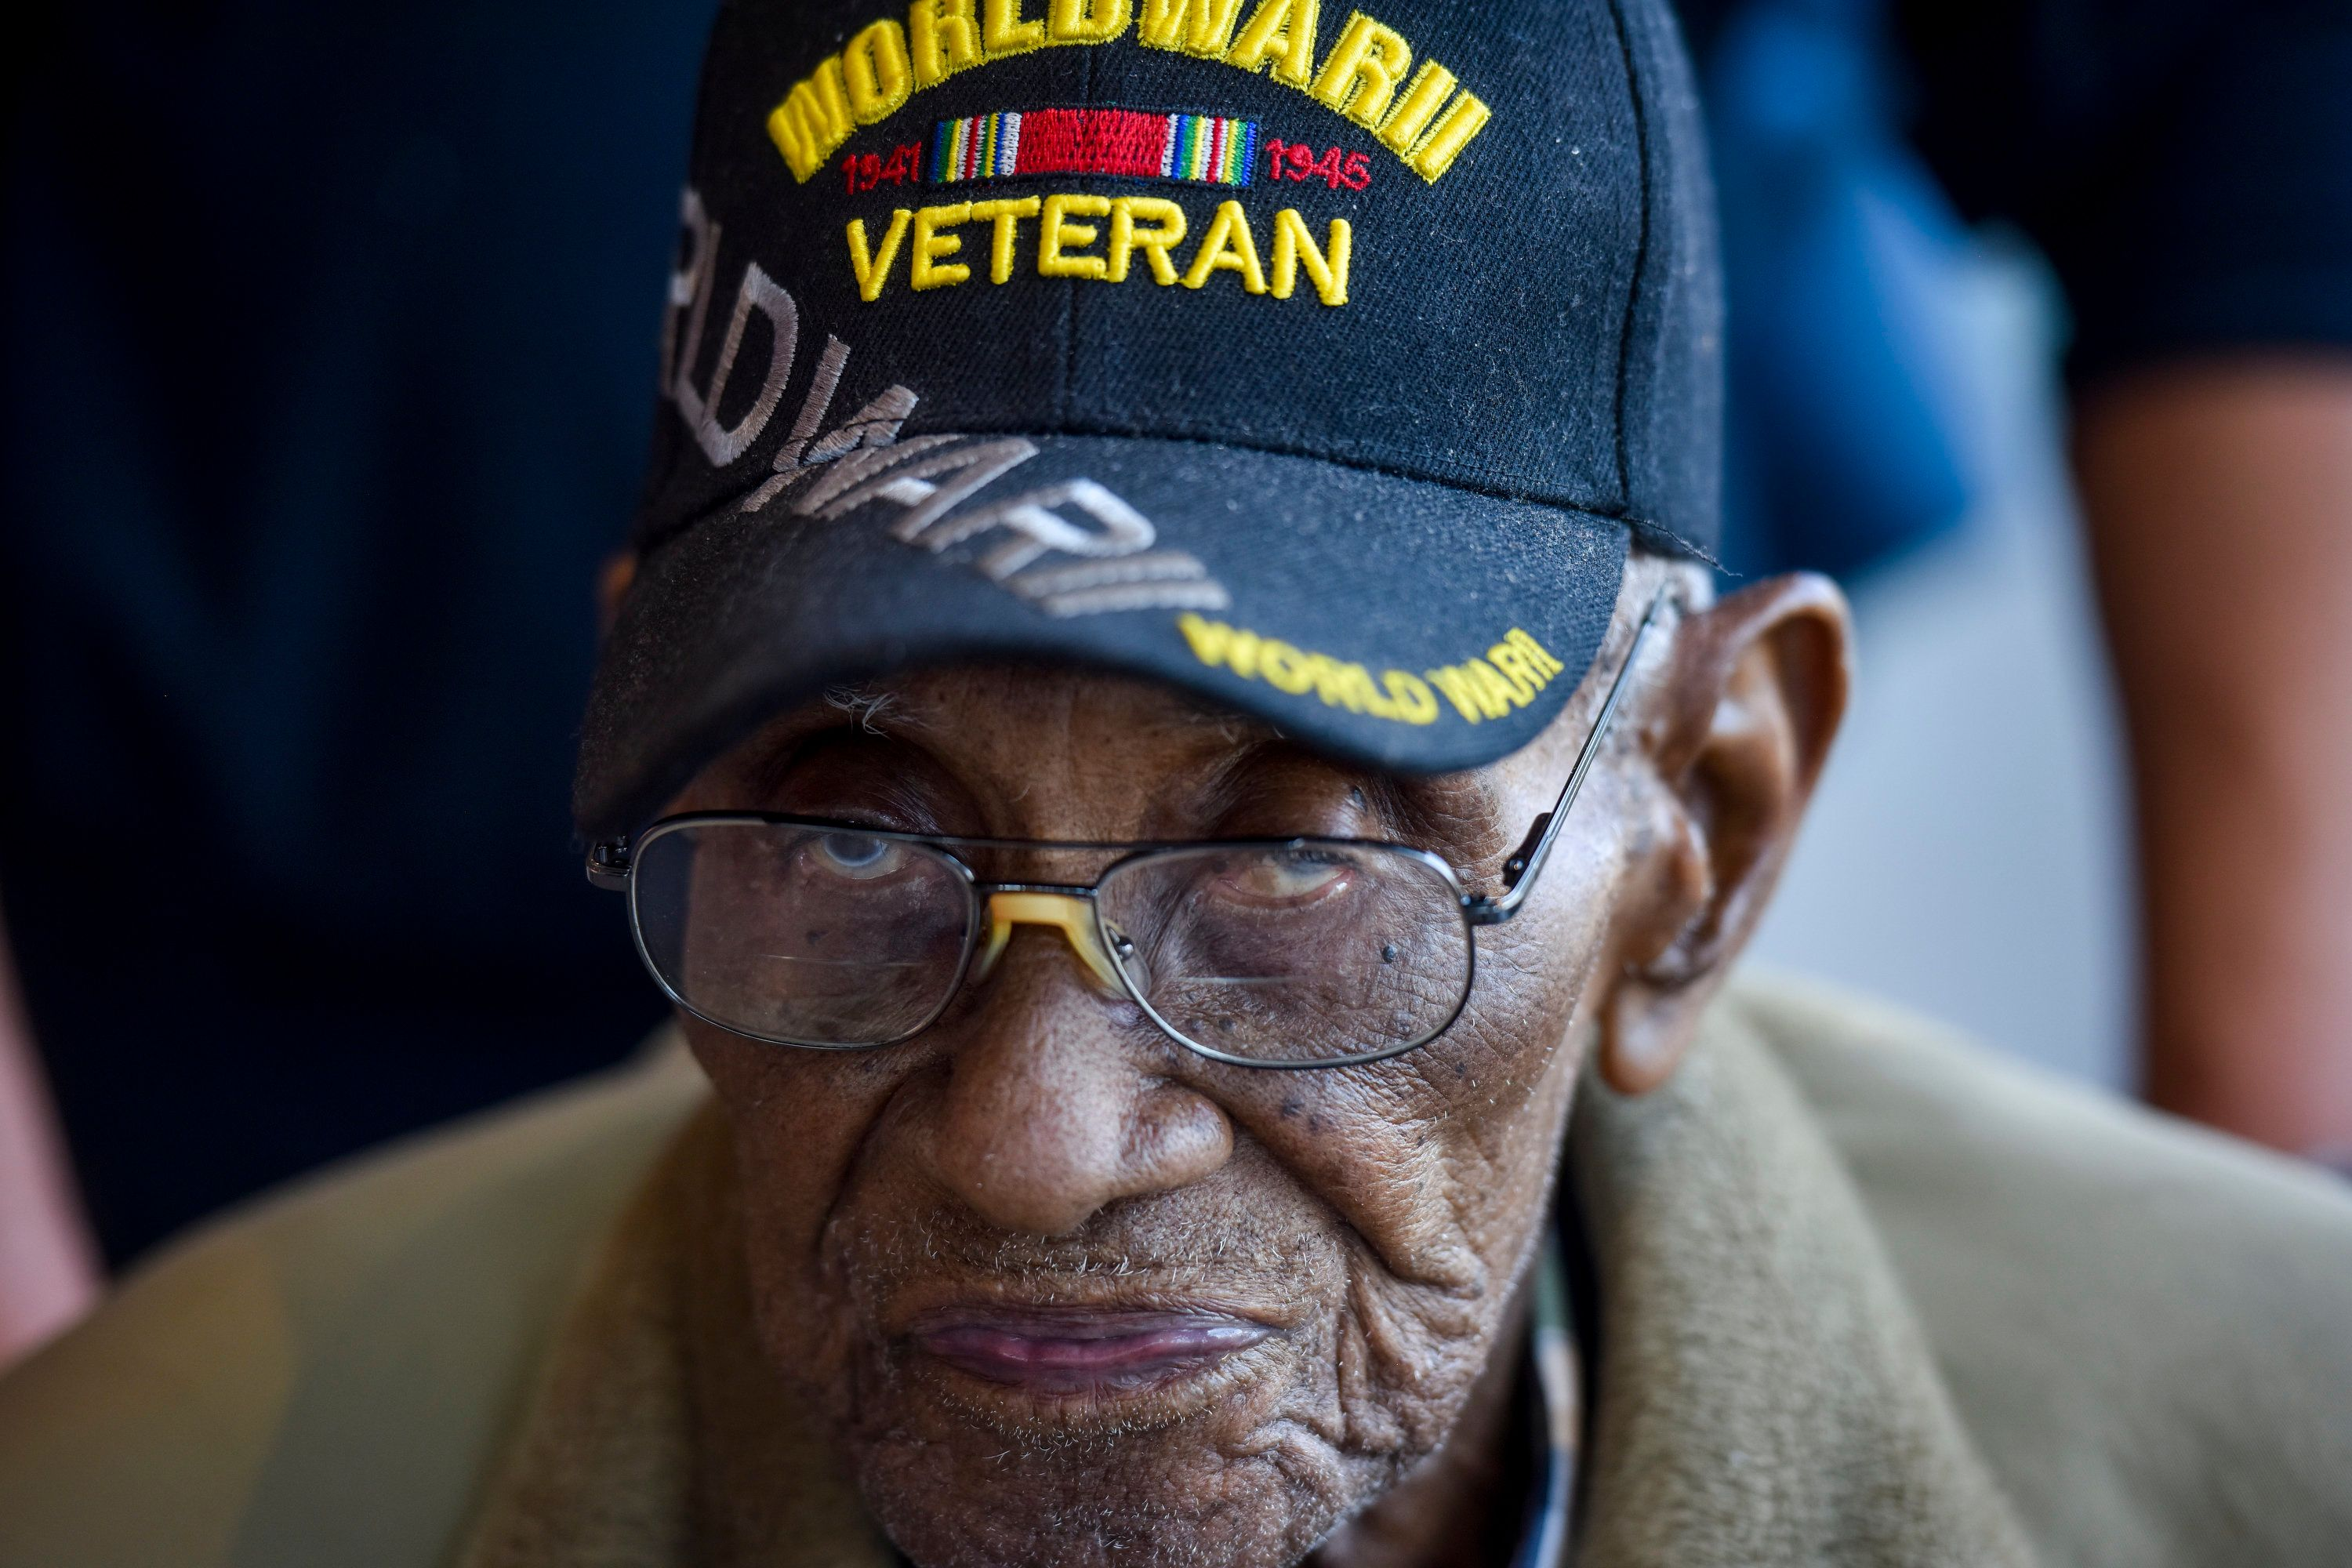 Richard Overton is the third oldestverifiedperson in the world and the oldest known person in the United States.